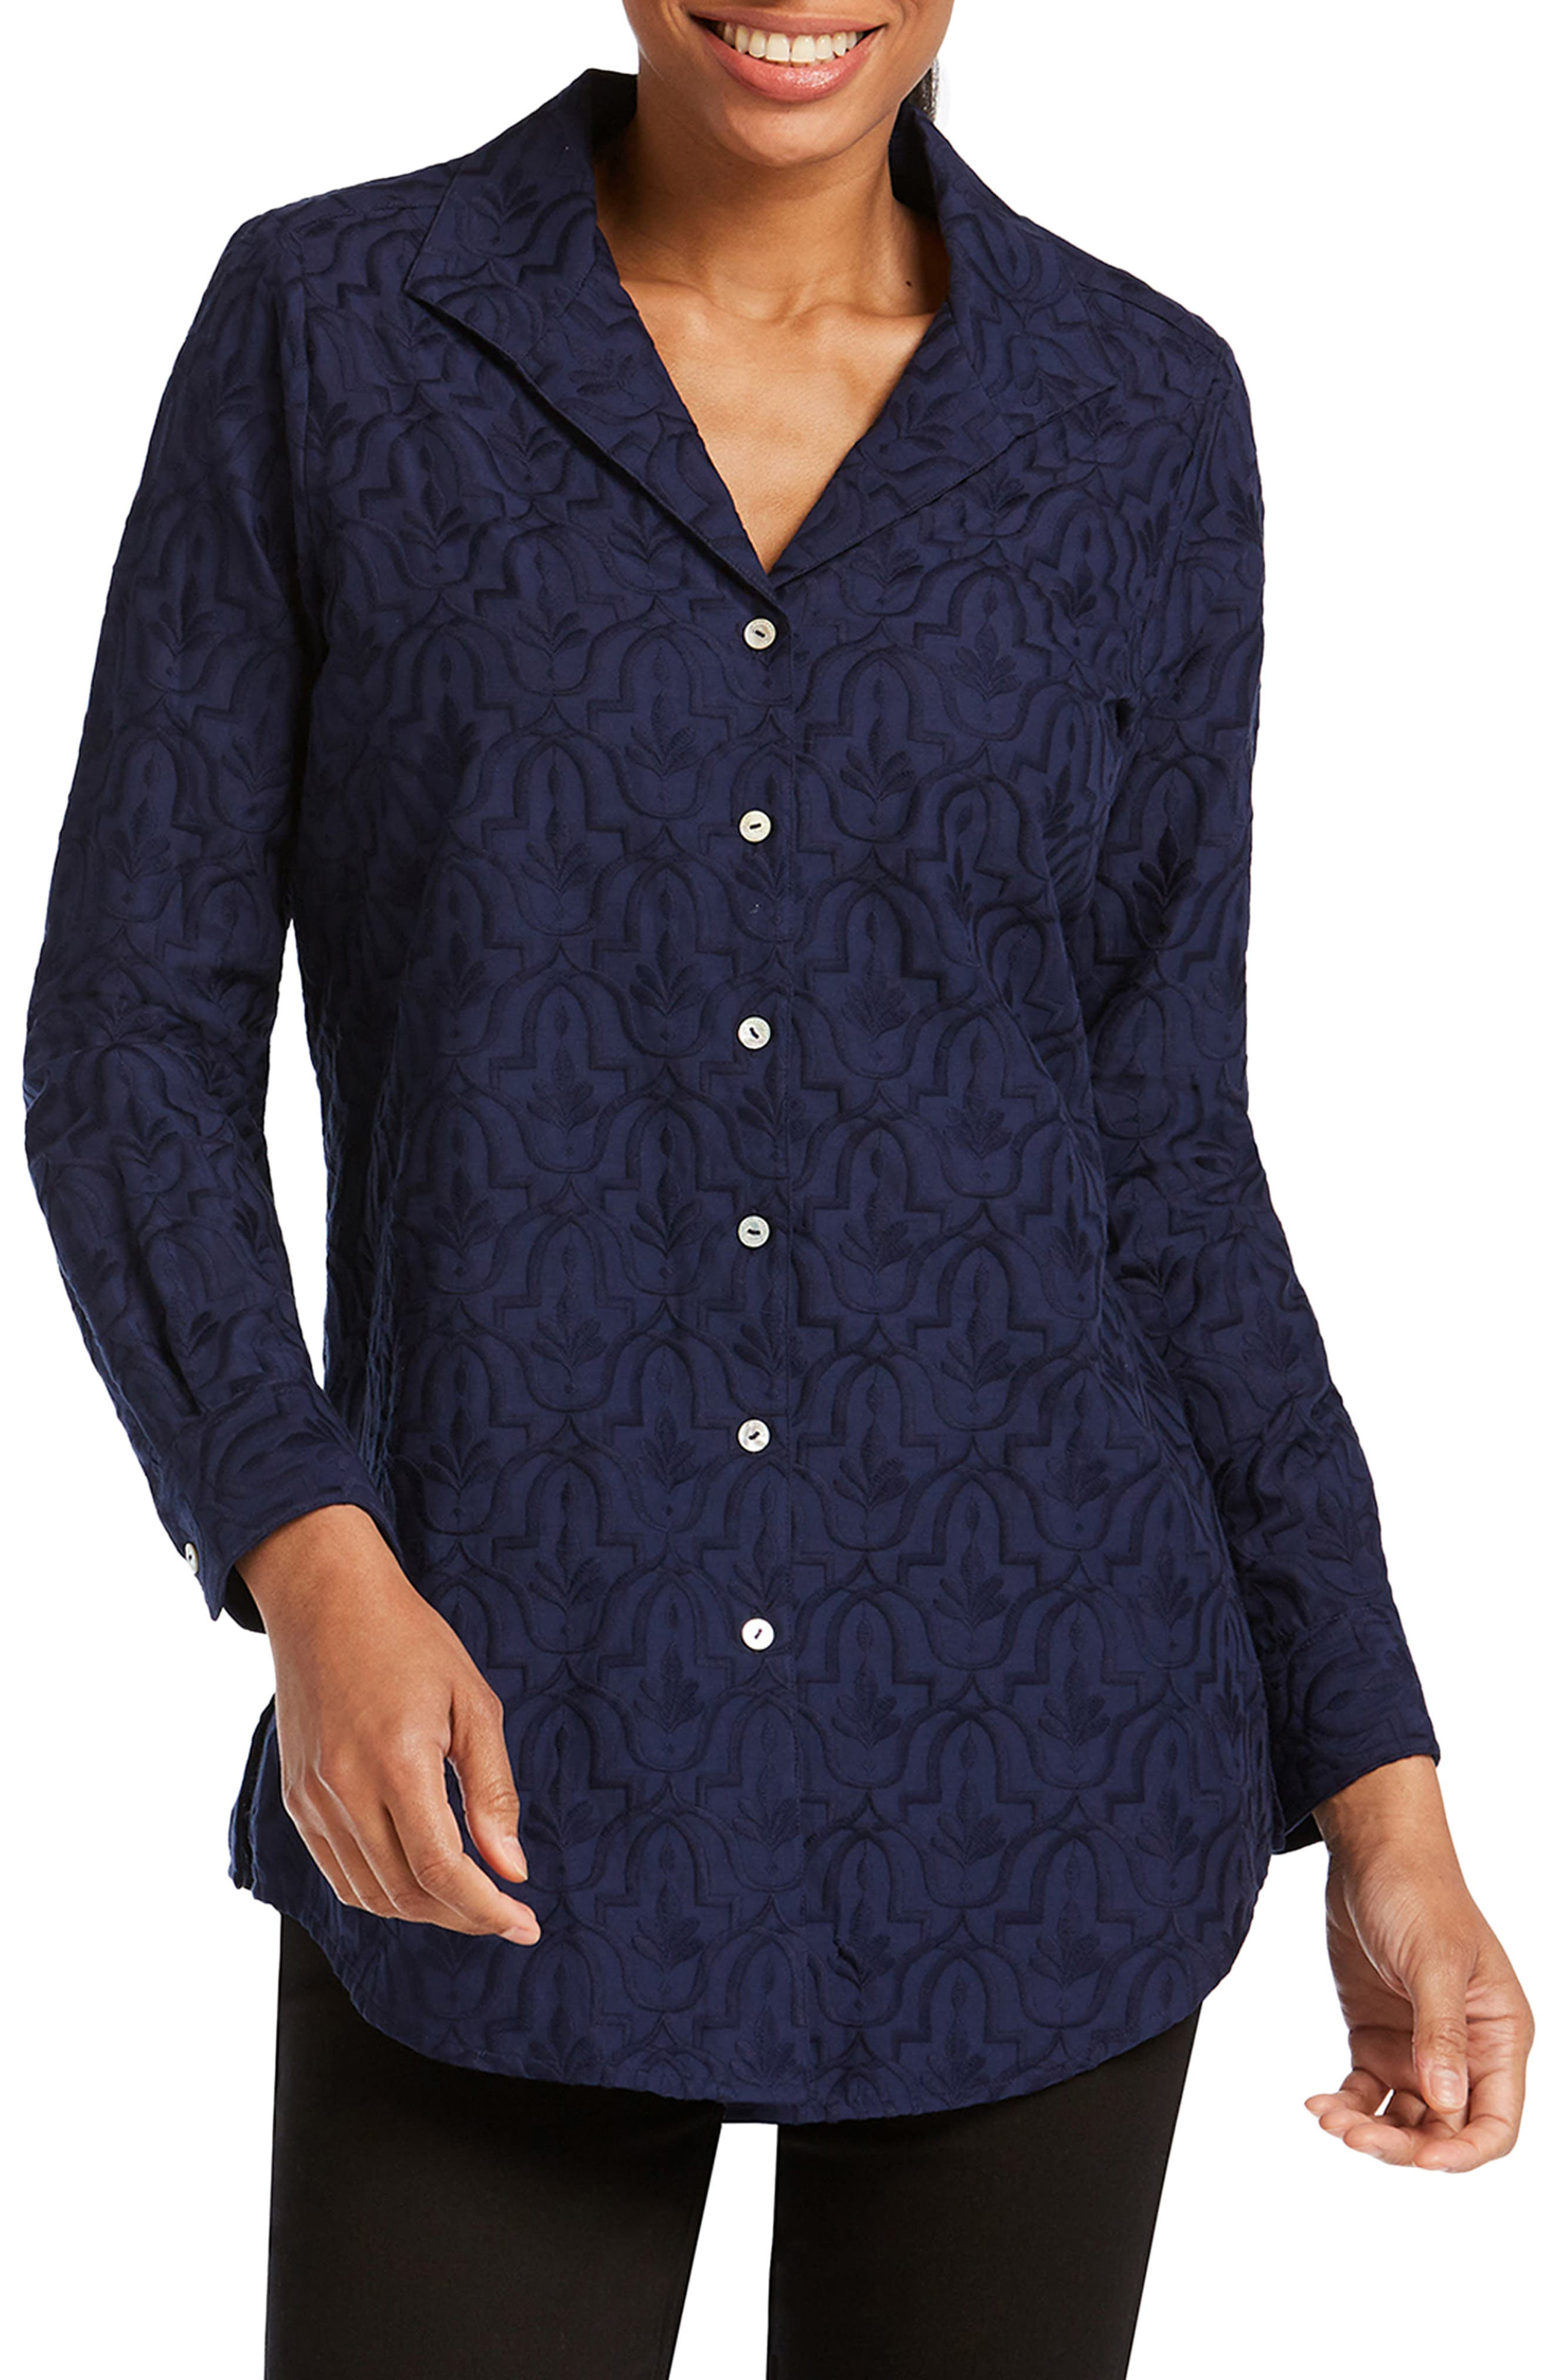 Ivy Mosaic Embroidery Cotton Tunic Top,                             Main thumbnail 1, color,                             NAVY